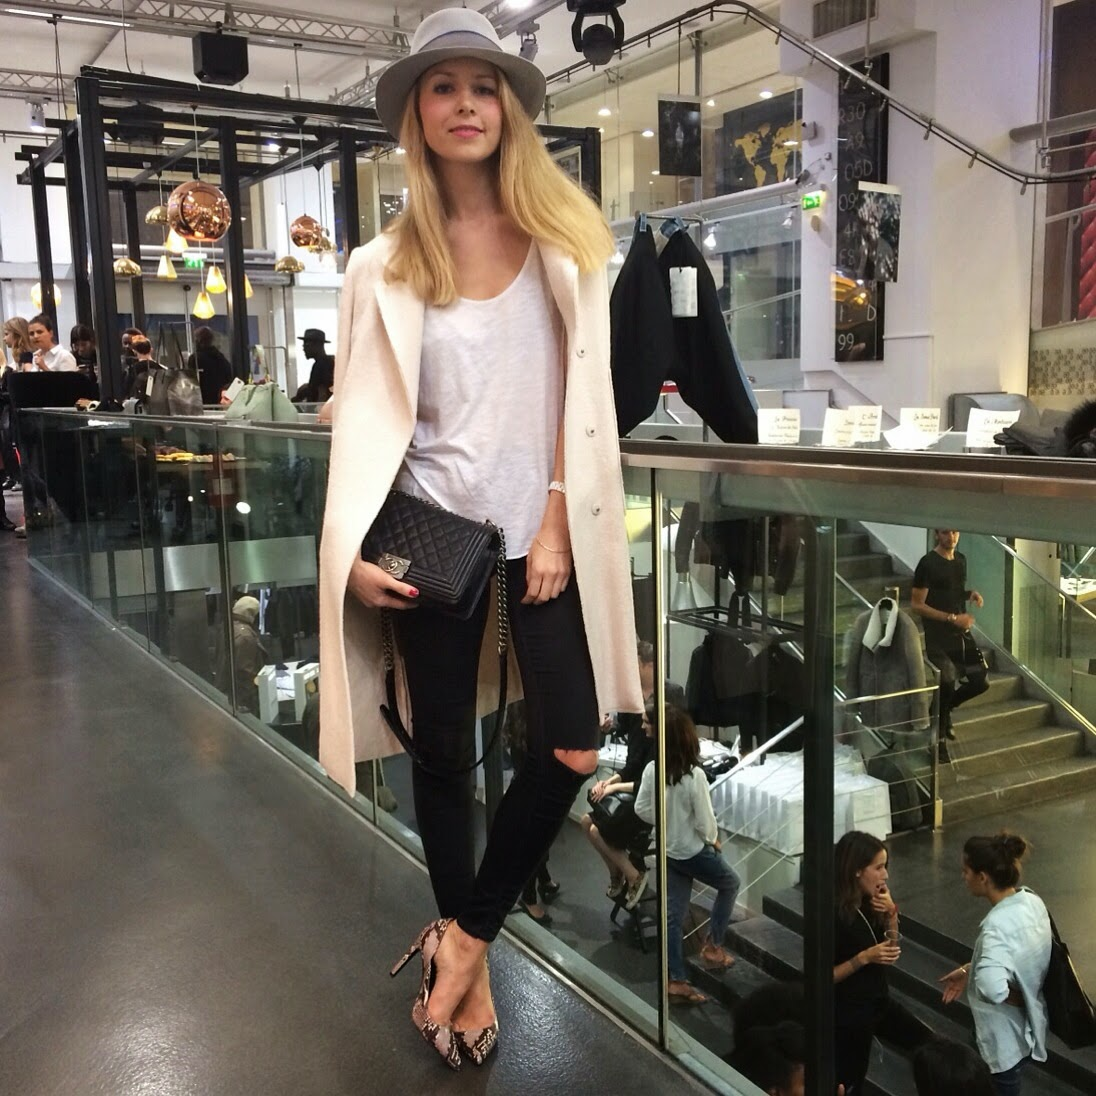 fashion blogger, fashion events, miriam salat, bochic, jewlery, le66 champs elysées, balmain, zara, topshop, chanel, paris